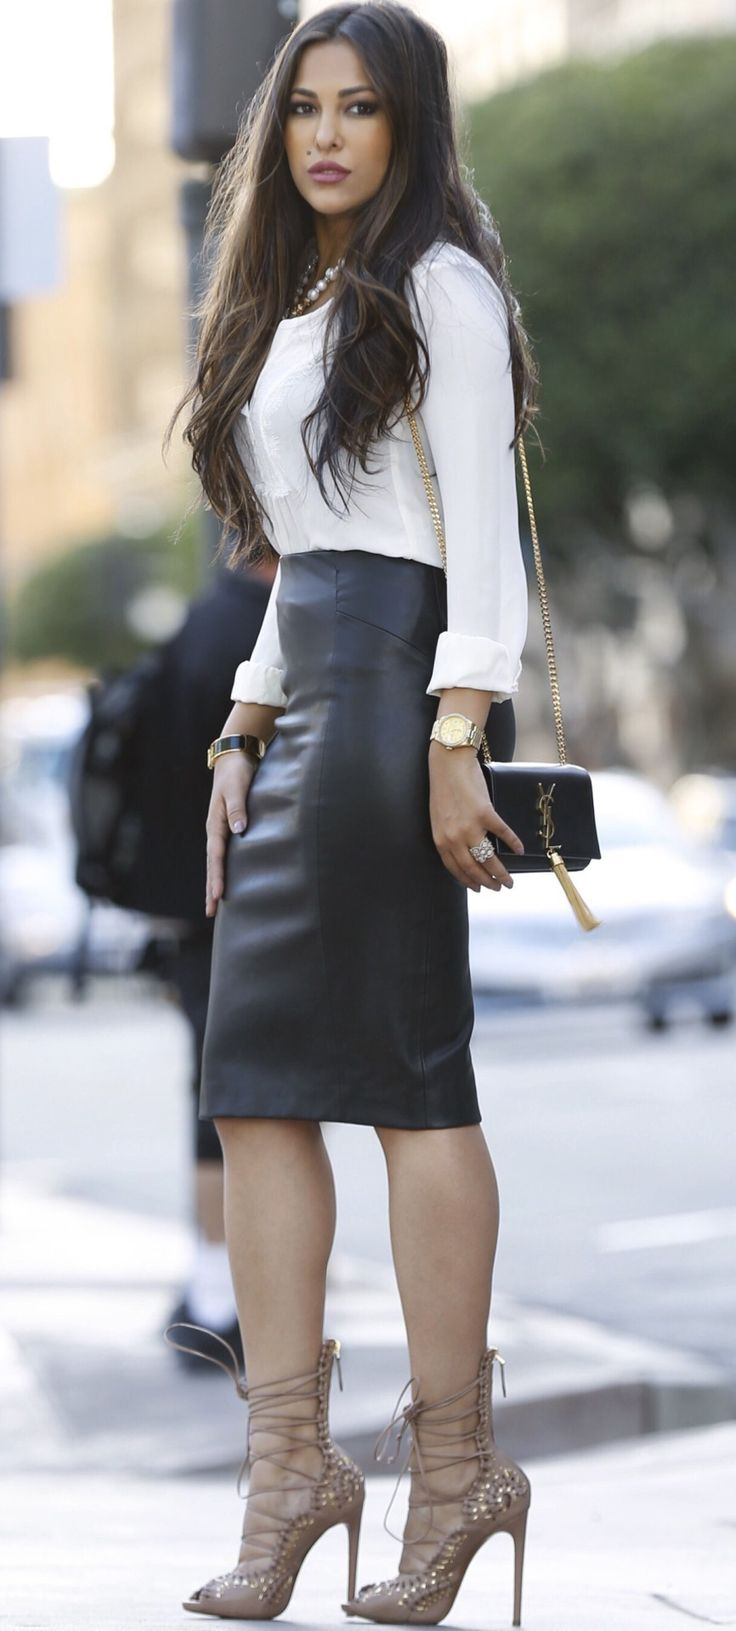 Elegant Business Woman Wearing A Leather Skirt And All Black To Office